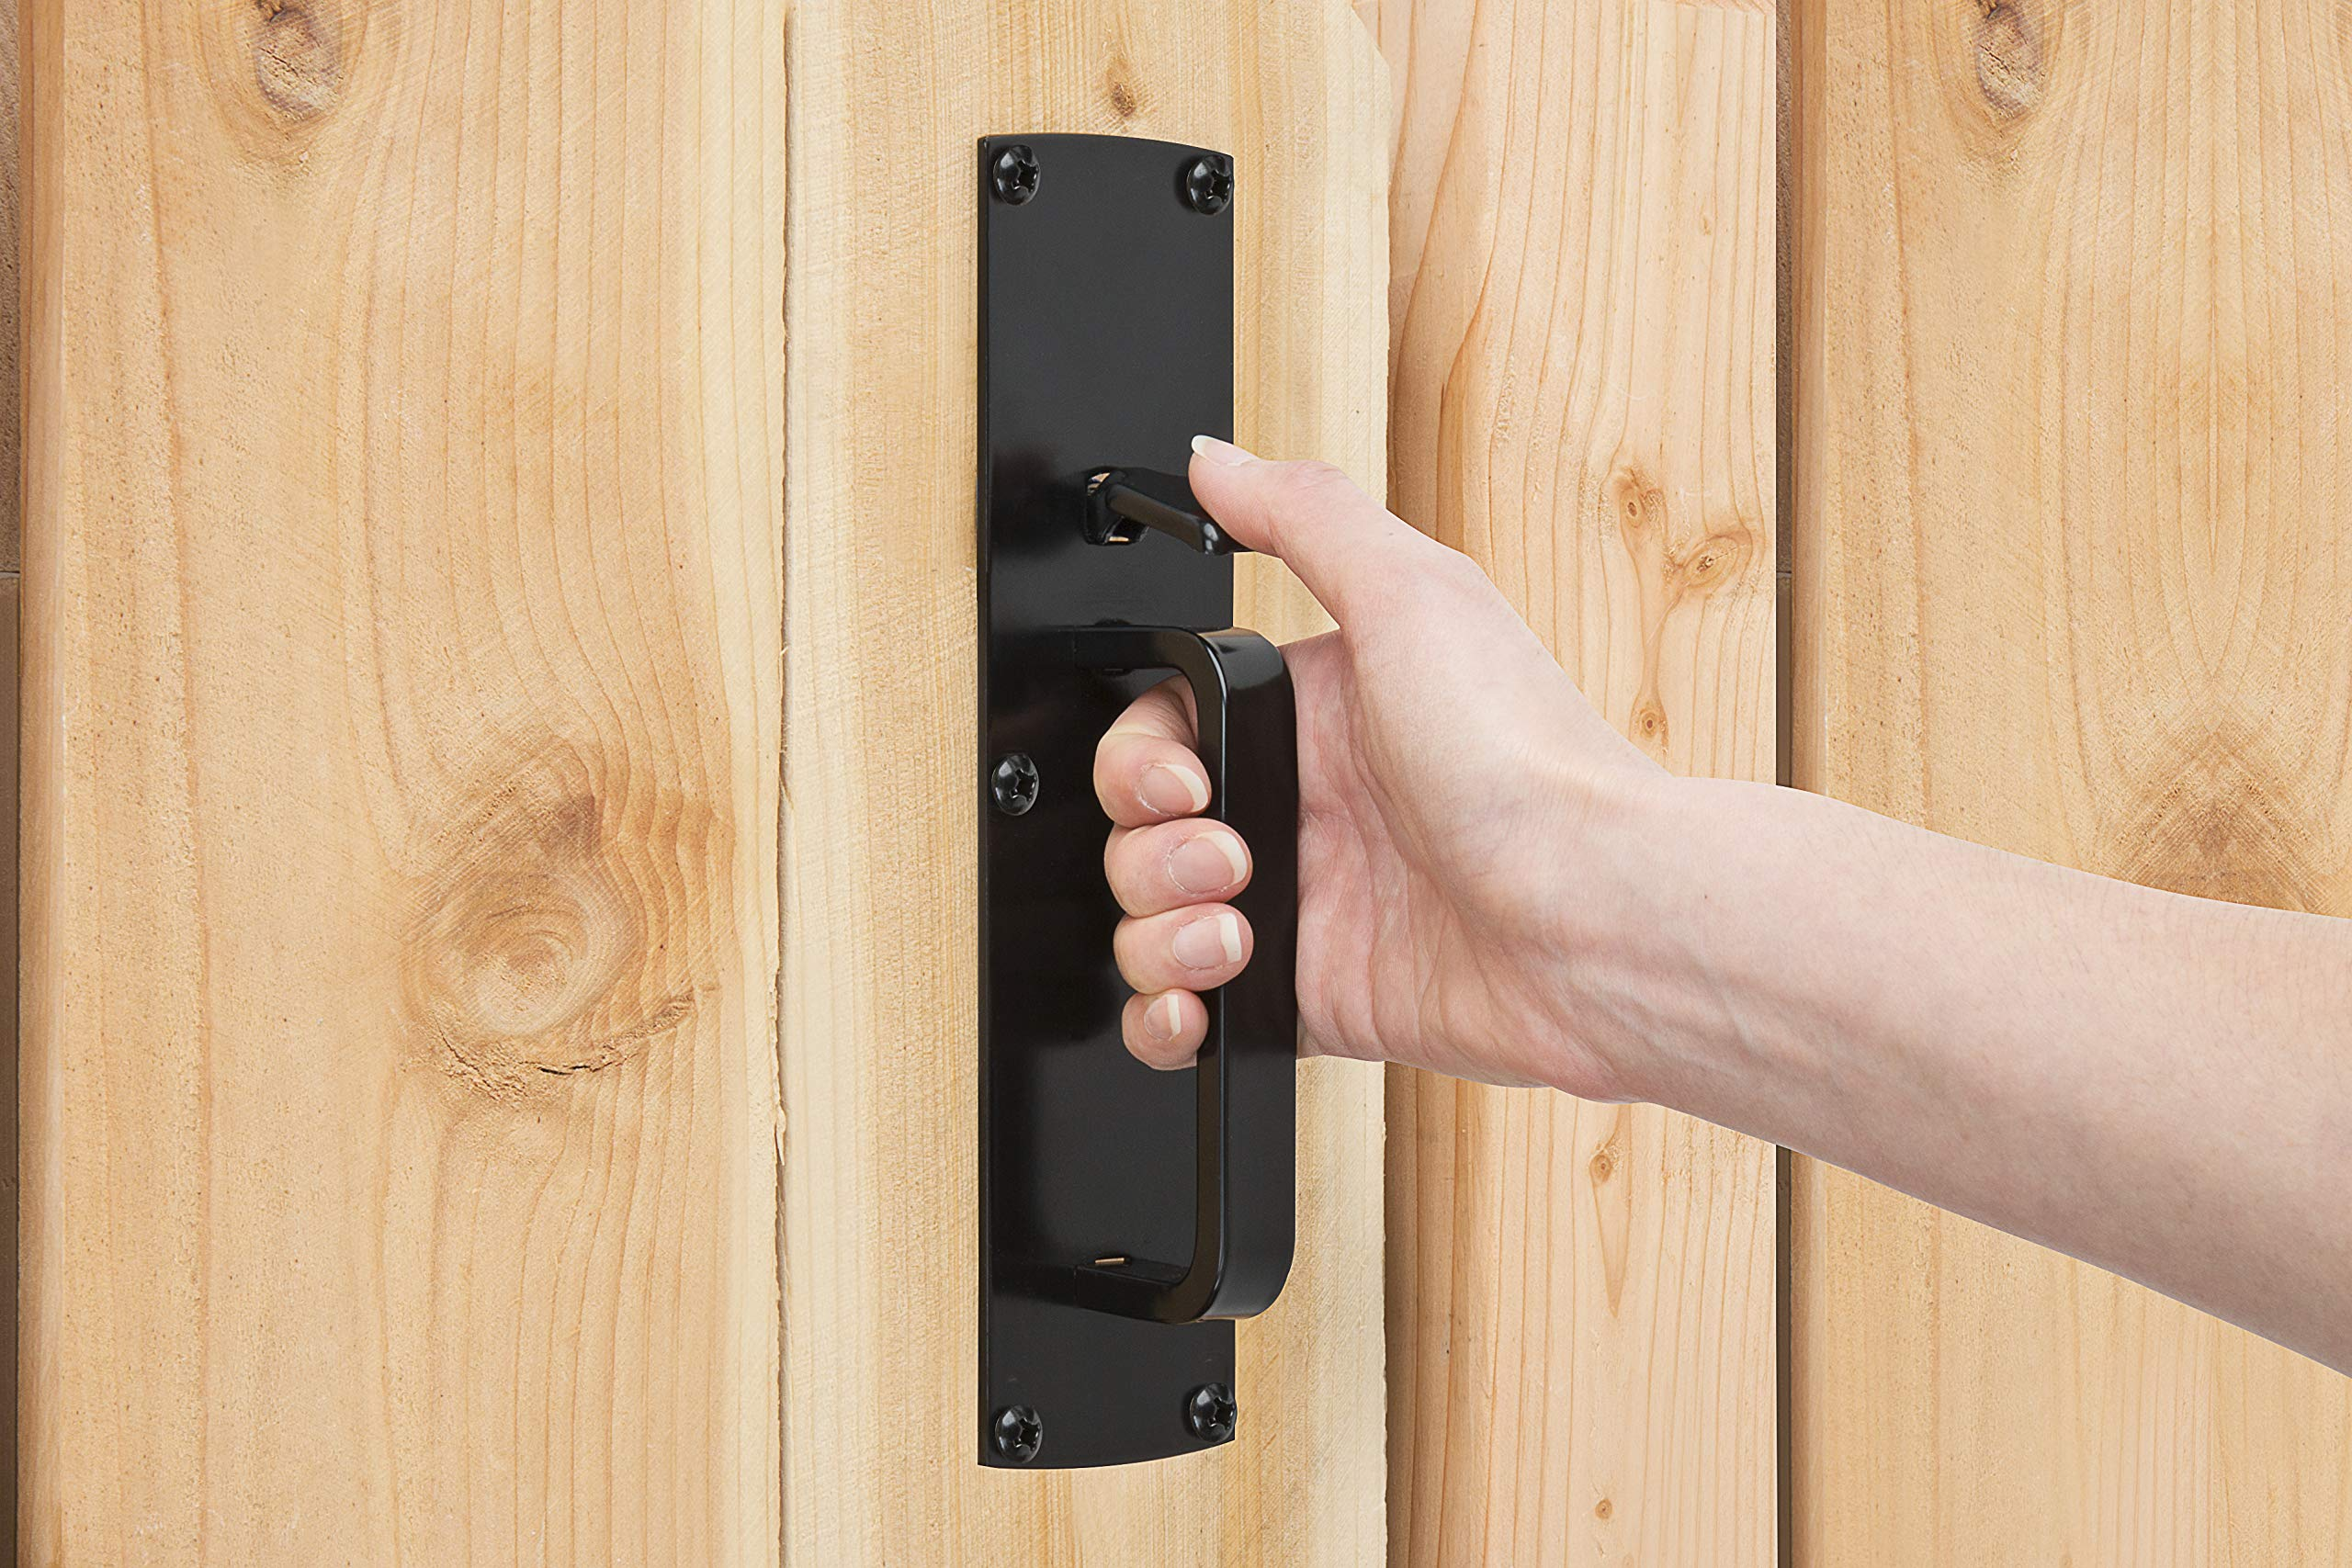 Gate Thumb Latch N109-050 by National Hardware in Black by National Hardware (Image #4)